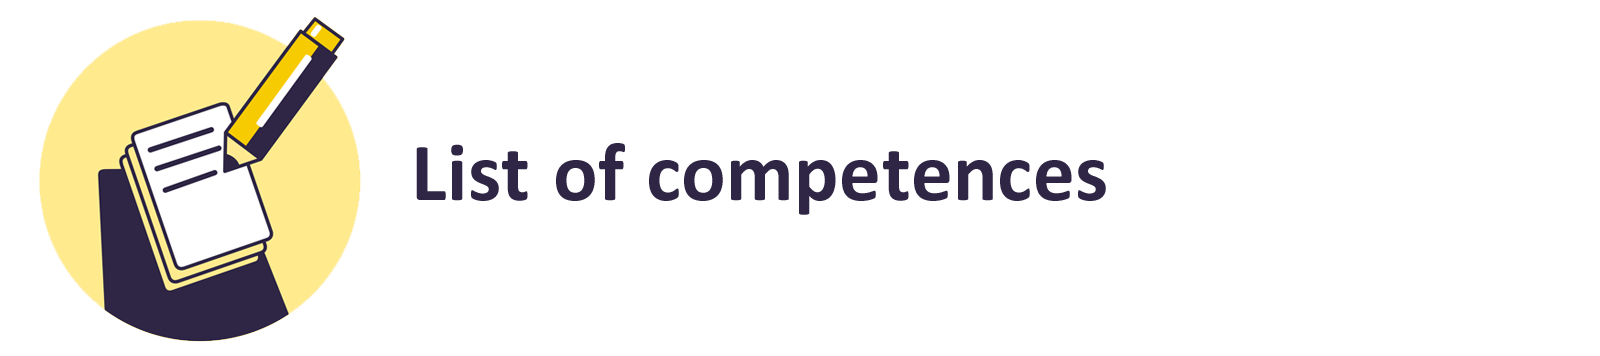 List of competences.png